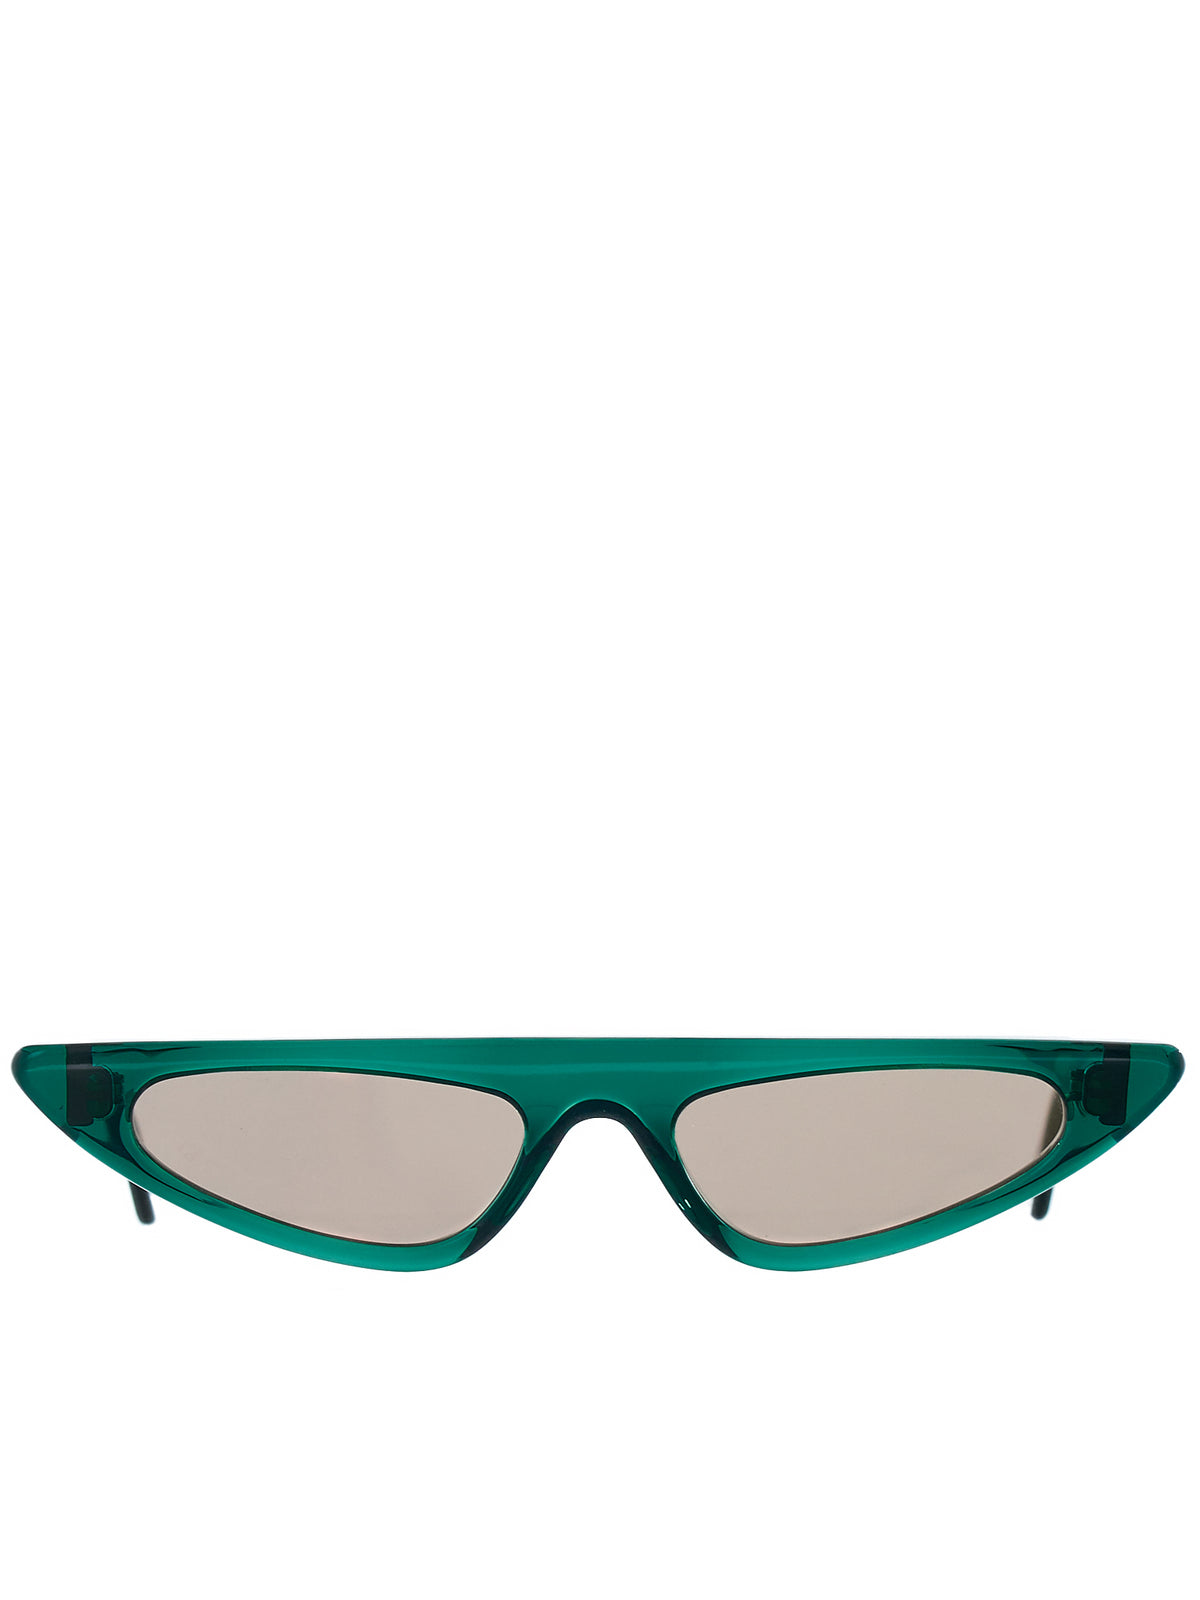 Andy Wolf Sunglasses - Hlorenzo Front